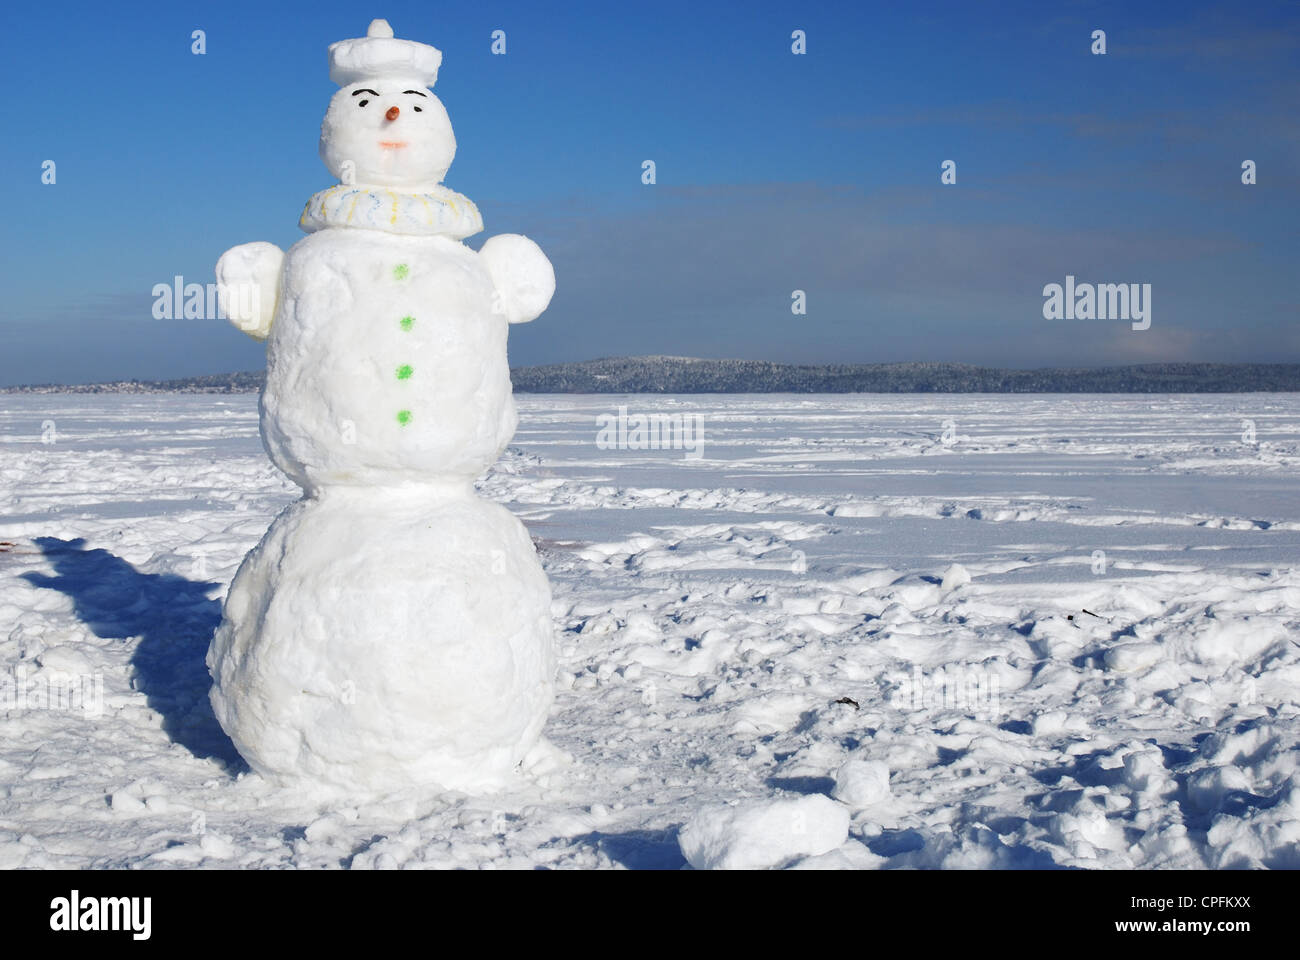 snowman on a wintry sunny day against blue sky - Stock Image